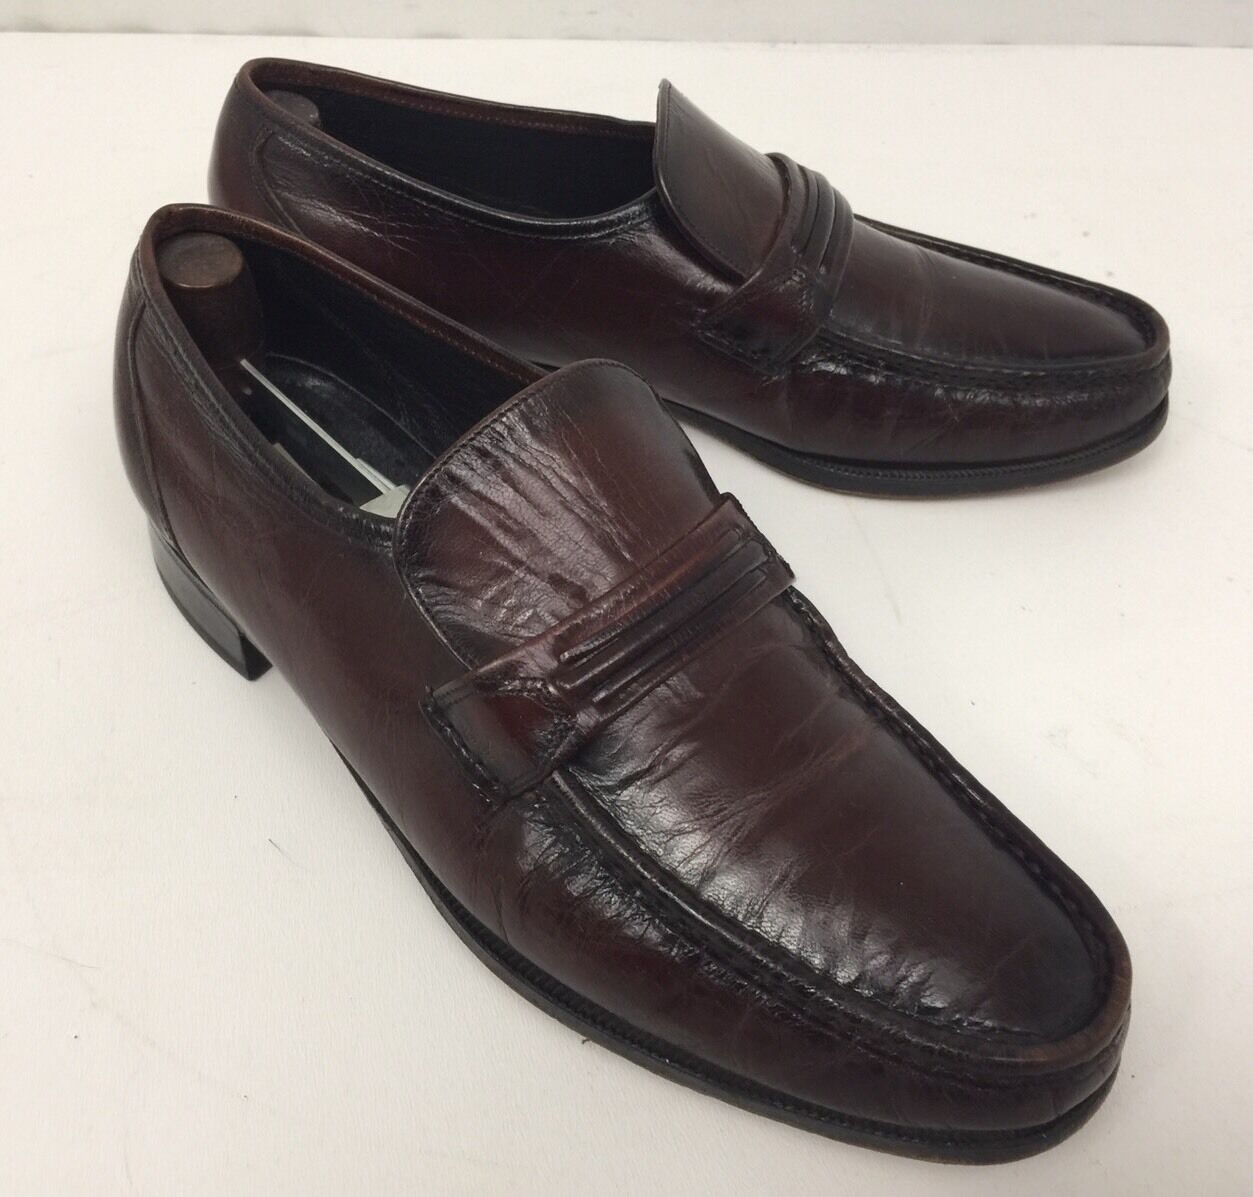 Florsheim Como Burgundy Leather Loafers 33455 Mens US 9.5D In EUC W Trees